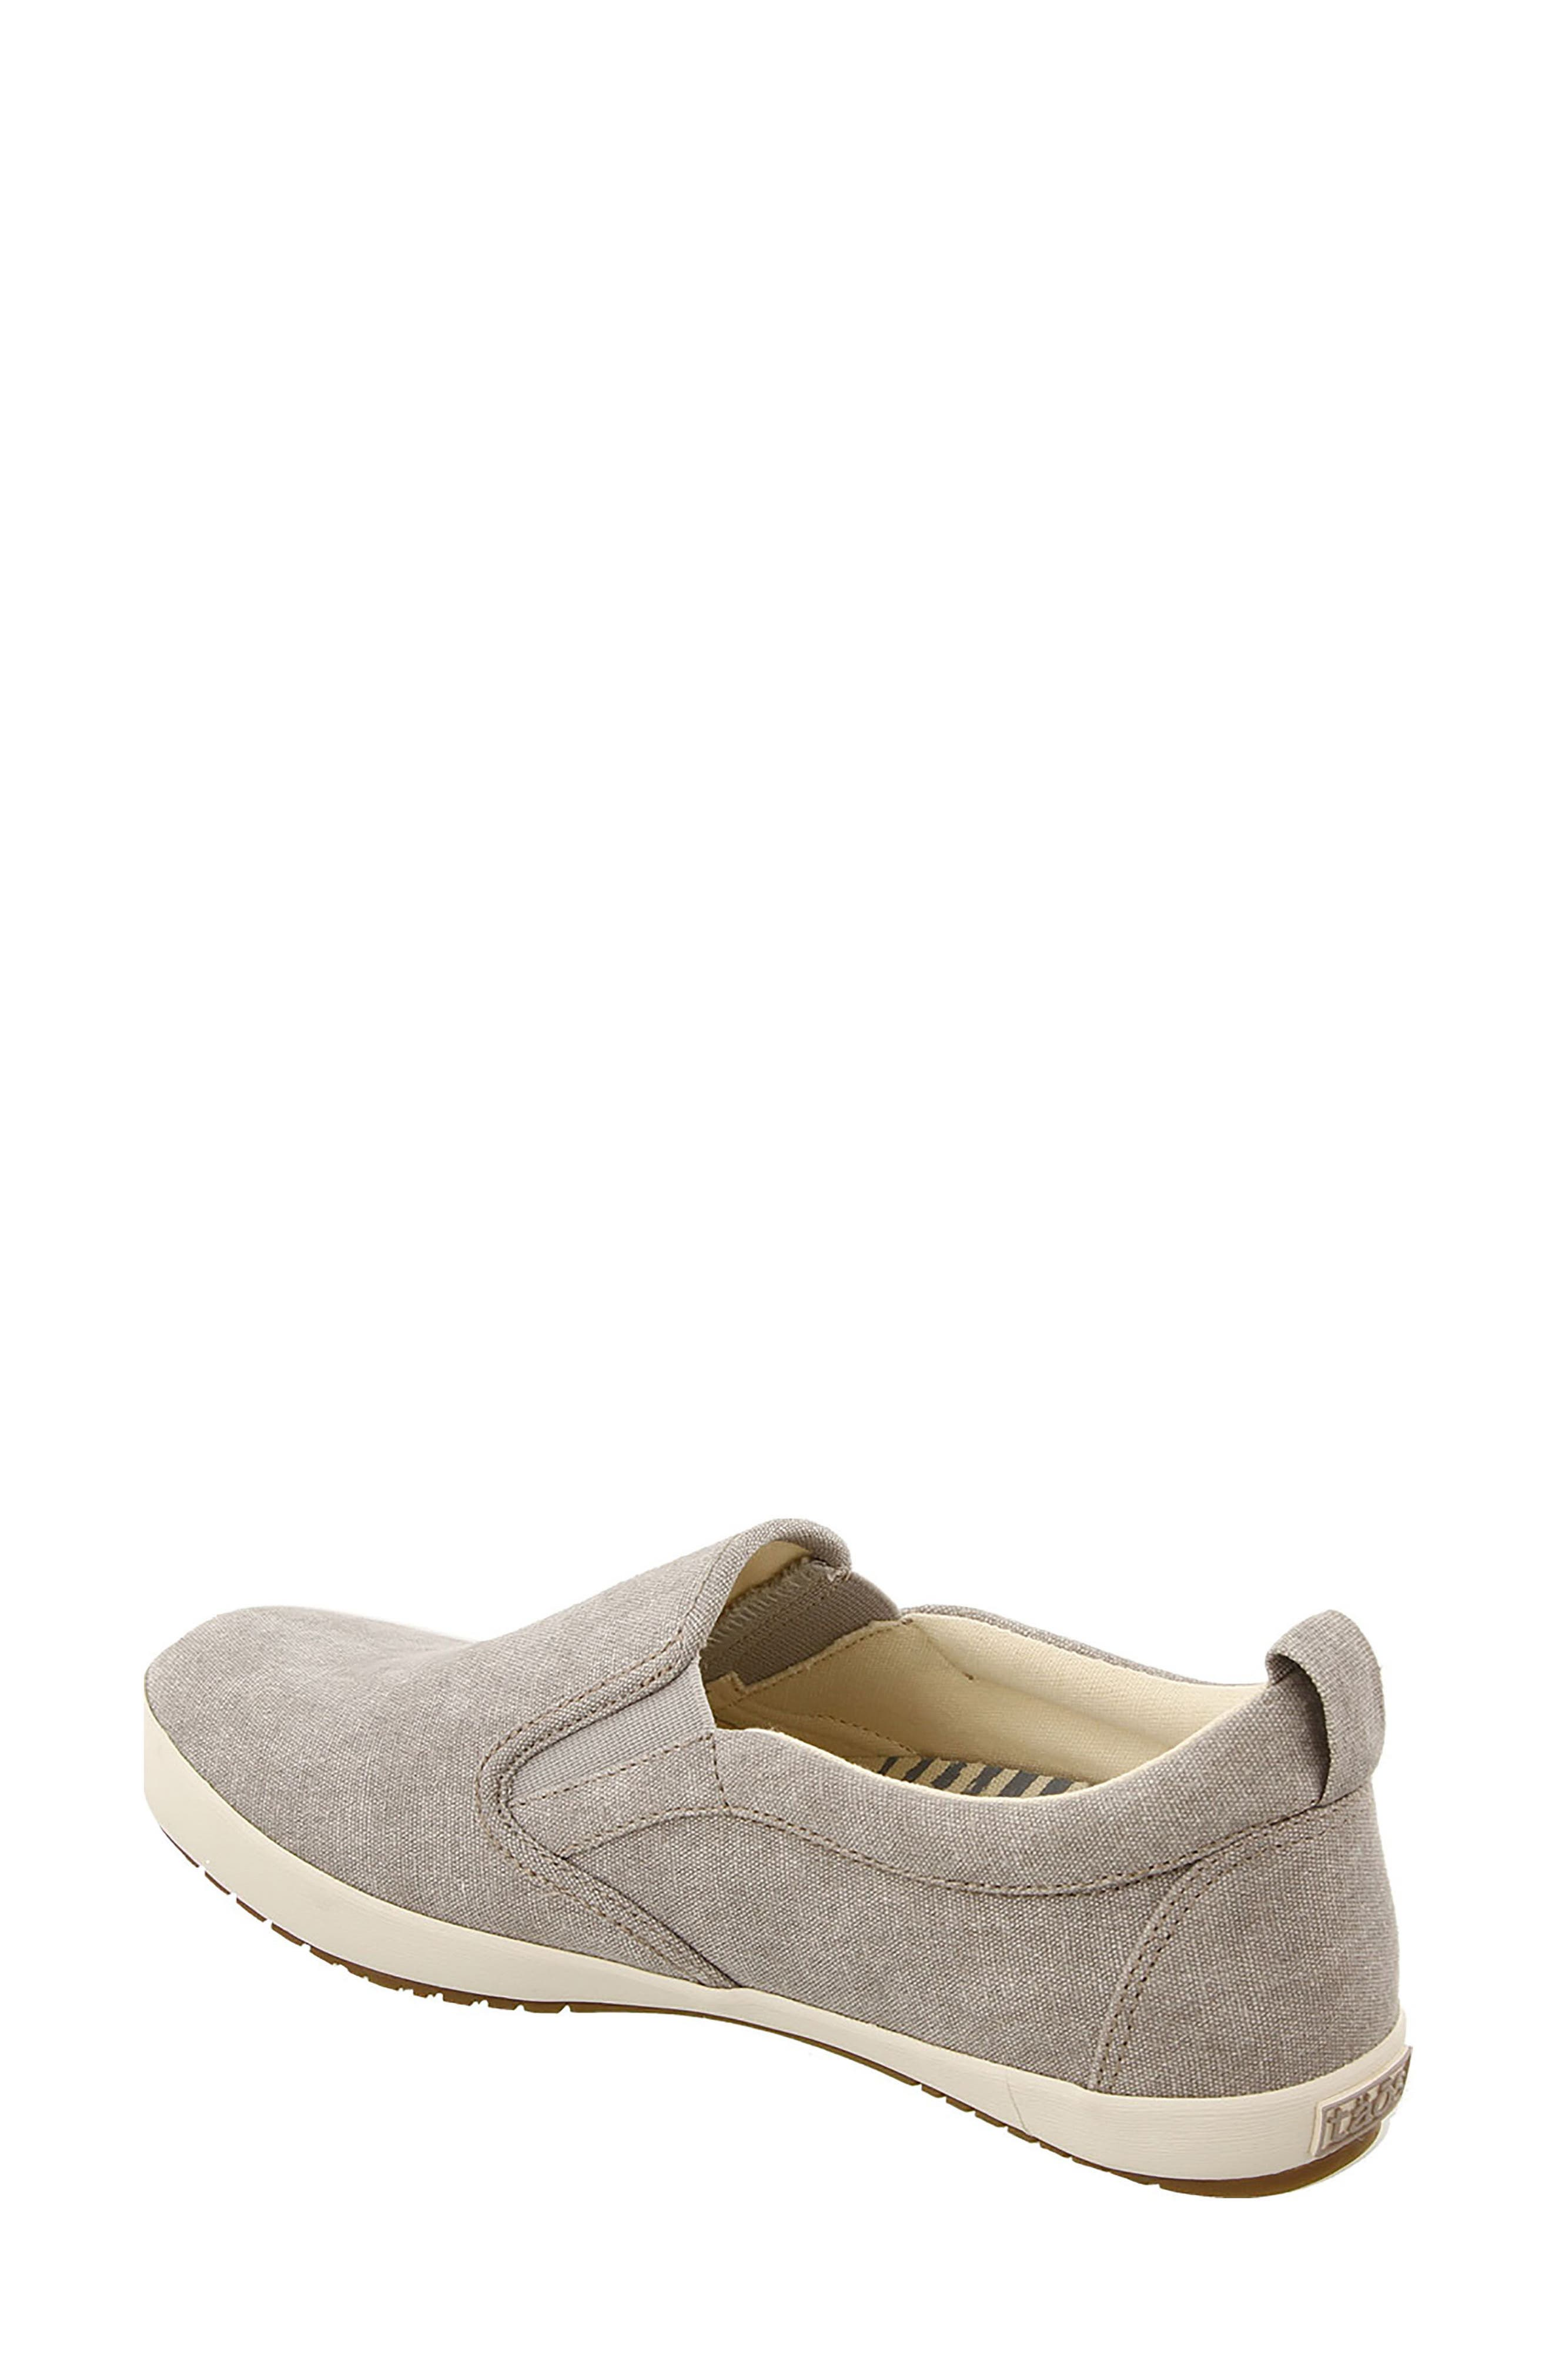 Dandy Slip-On Sneaker,                             Alternate thumbnail 2, color,                             GREY WASHED CANVAS